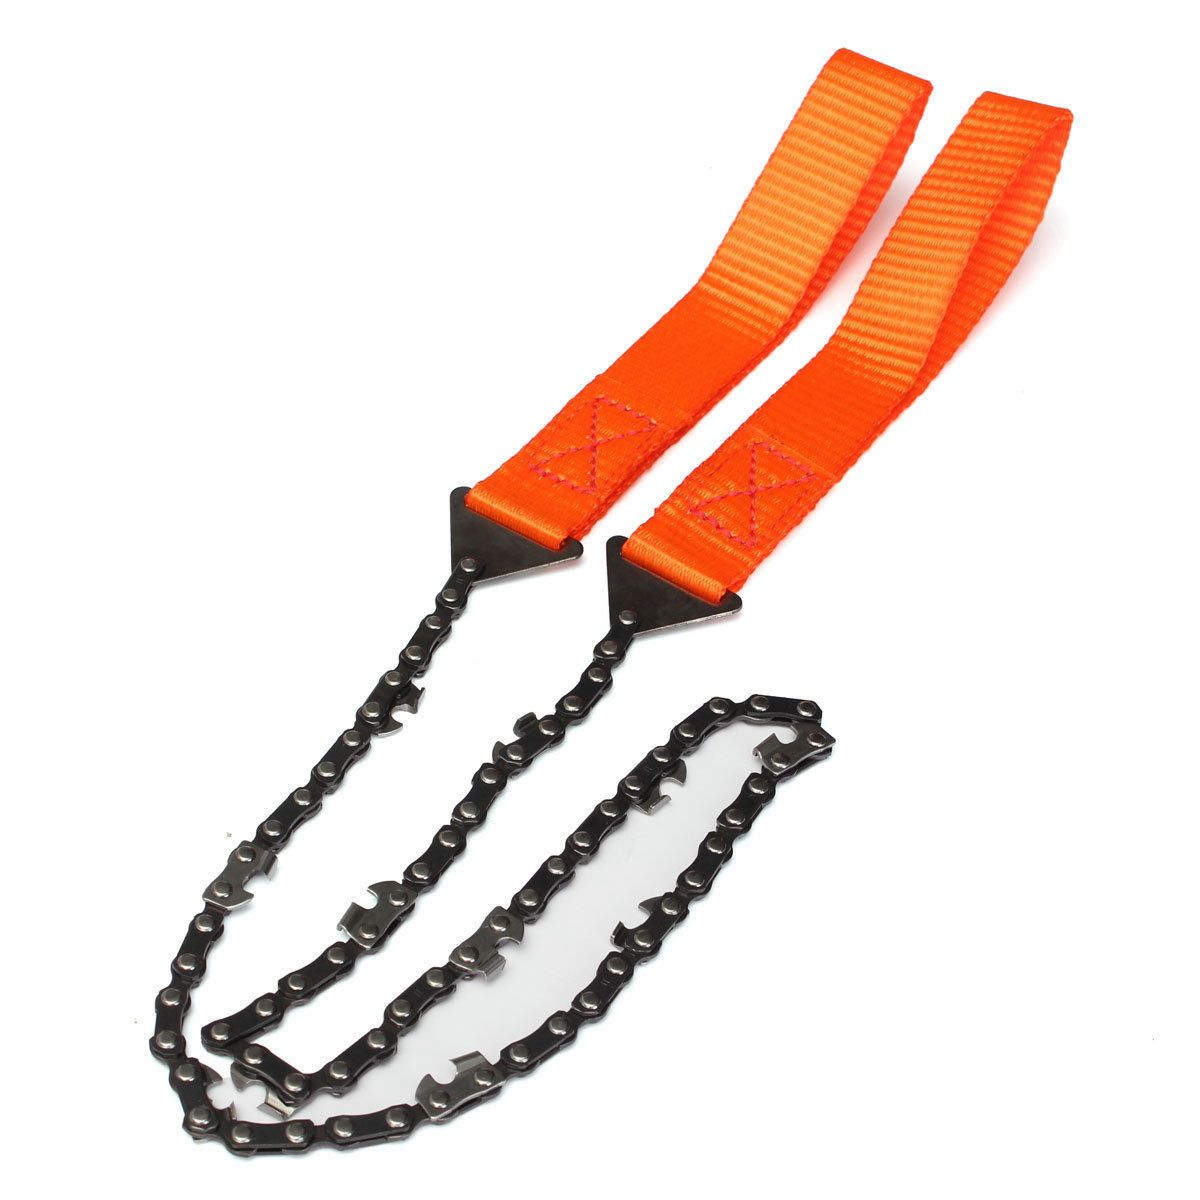 Tool Parts Helpful Portable Survival Chain Saw Chainsaw Emergency Camping Pocket Hand Tool Pouch A Great Variety Of Goods